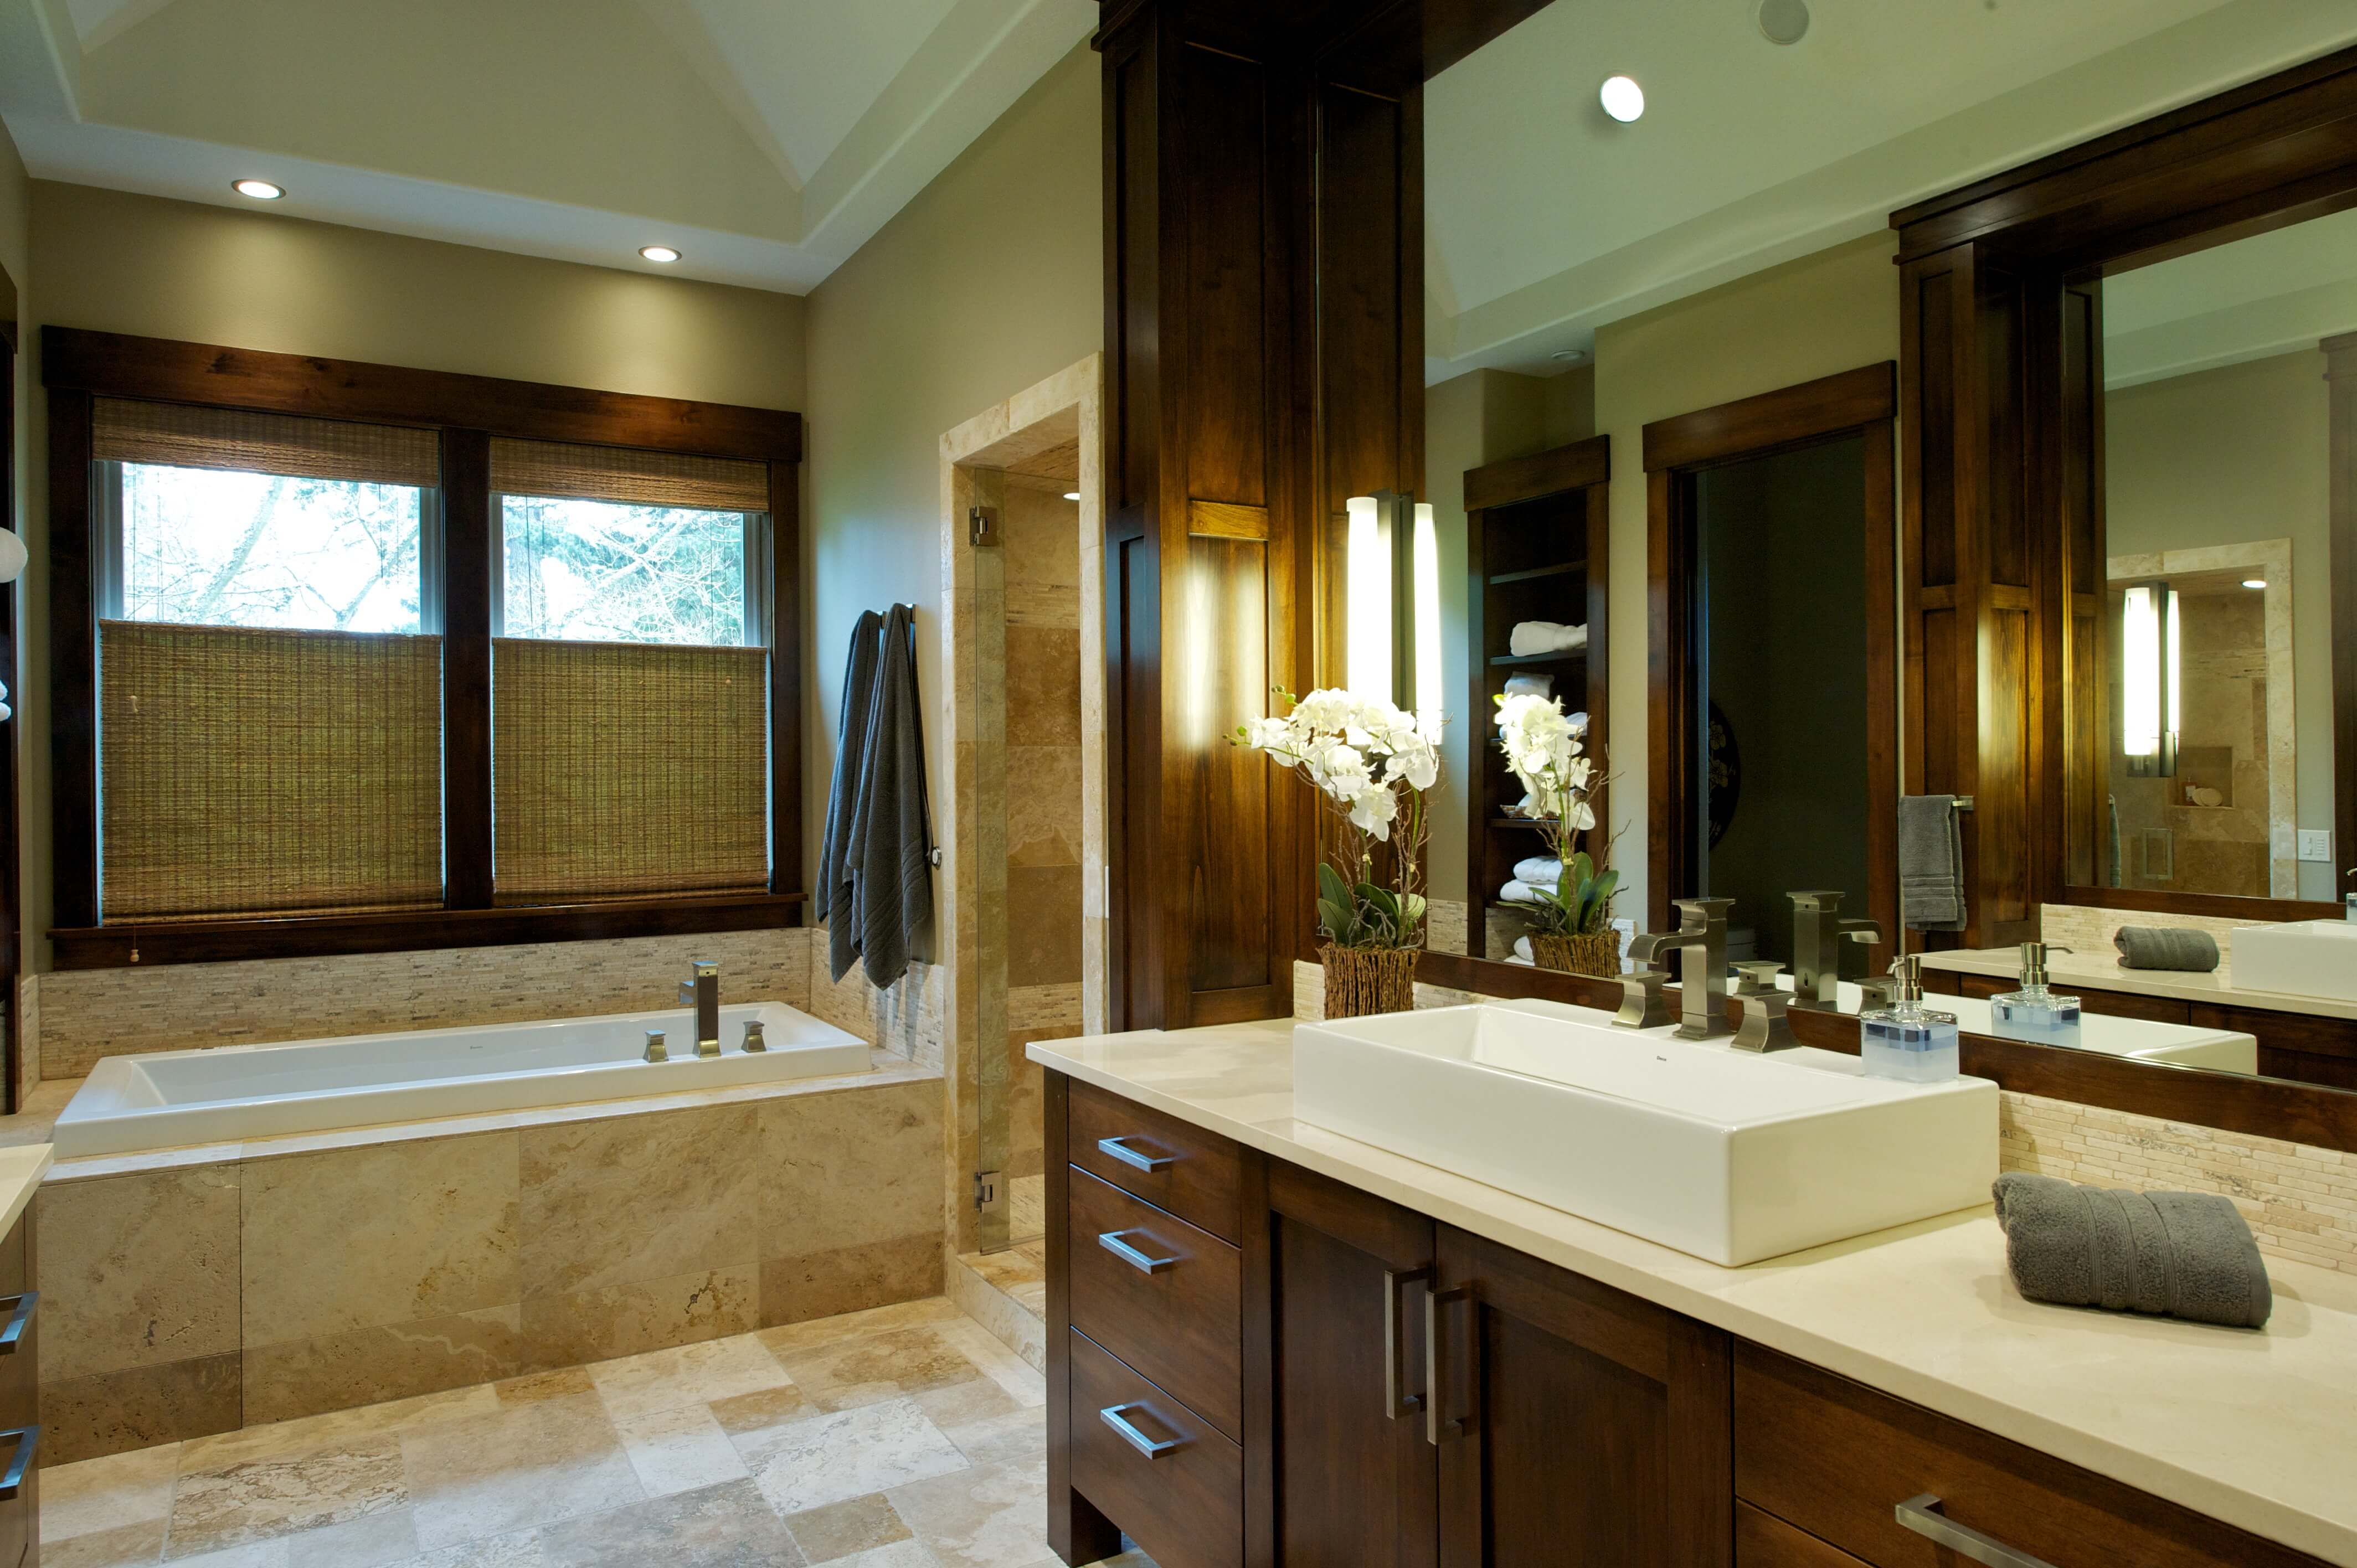 Closer view of bathroom counter space with rectangular vessel sink and small tile backsplash. Large tub surround is seen on left.